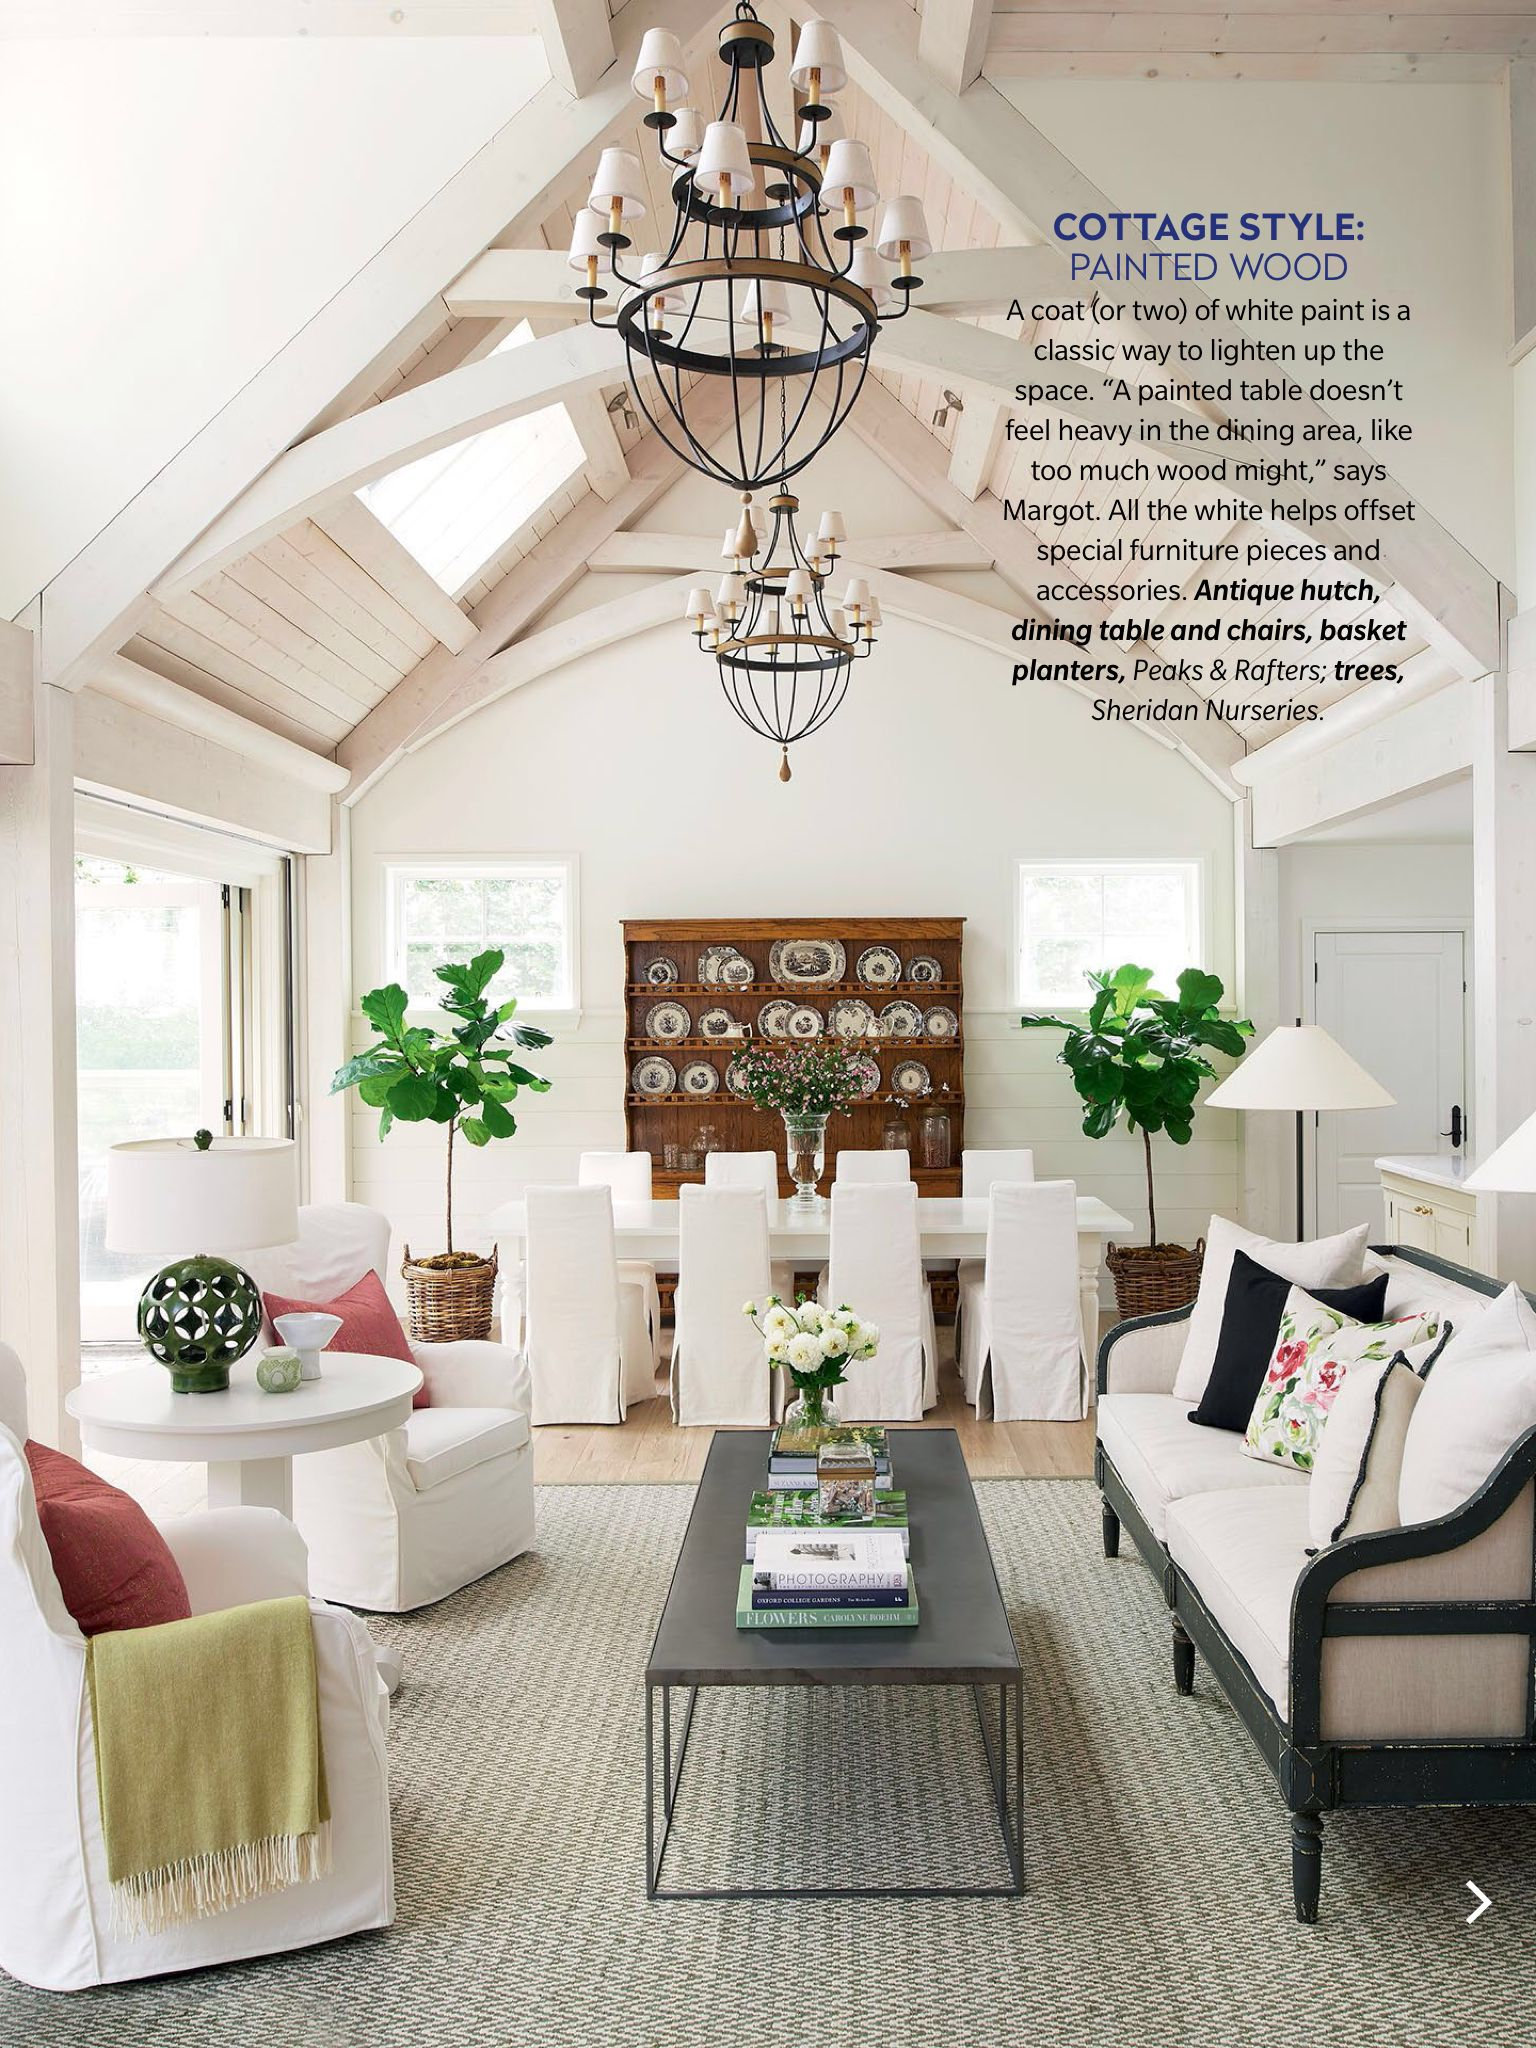 Miraculous Design Lesson From House Home Magazine July 2018 Read Interior Design Ideas Grebswwsoteloinfo